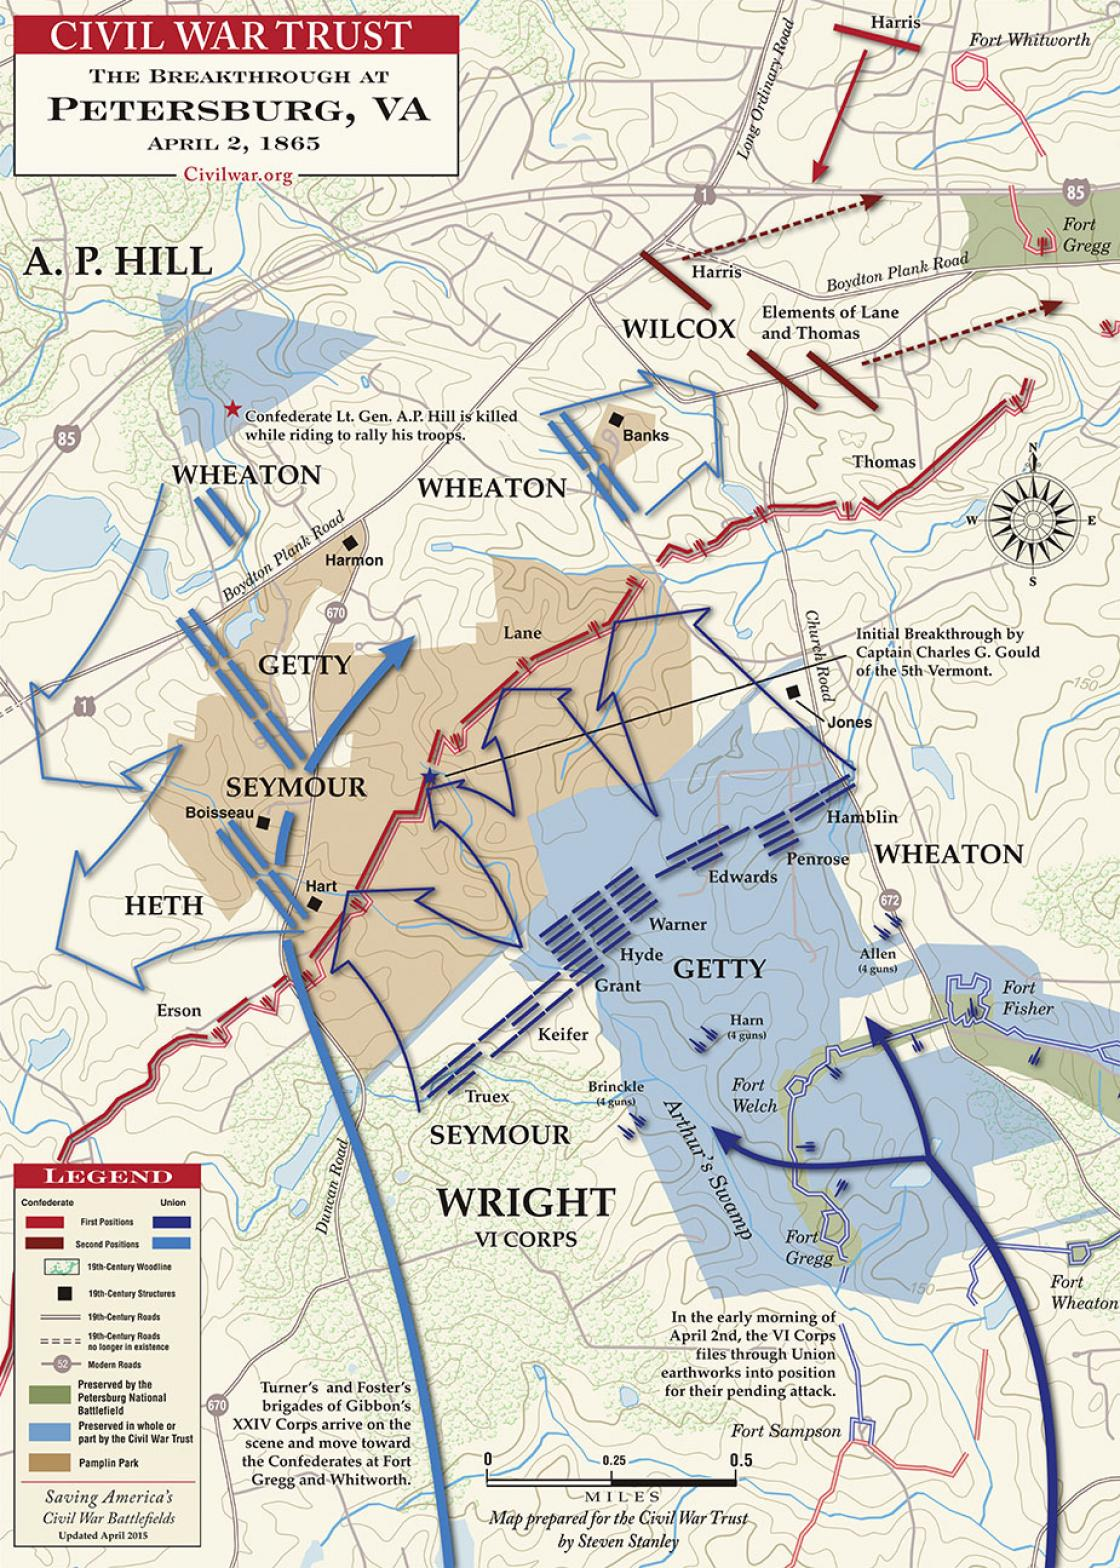 A map of the Breakthrough at Petersburg,  which occurred on April 2, 1865, which led the Confederates to abandon Petersburg and Richmond. Courtesy the Civil War Trust.